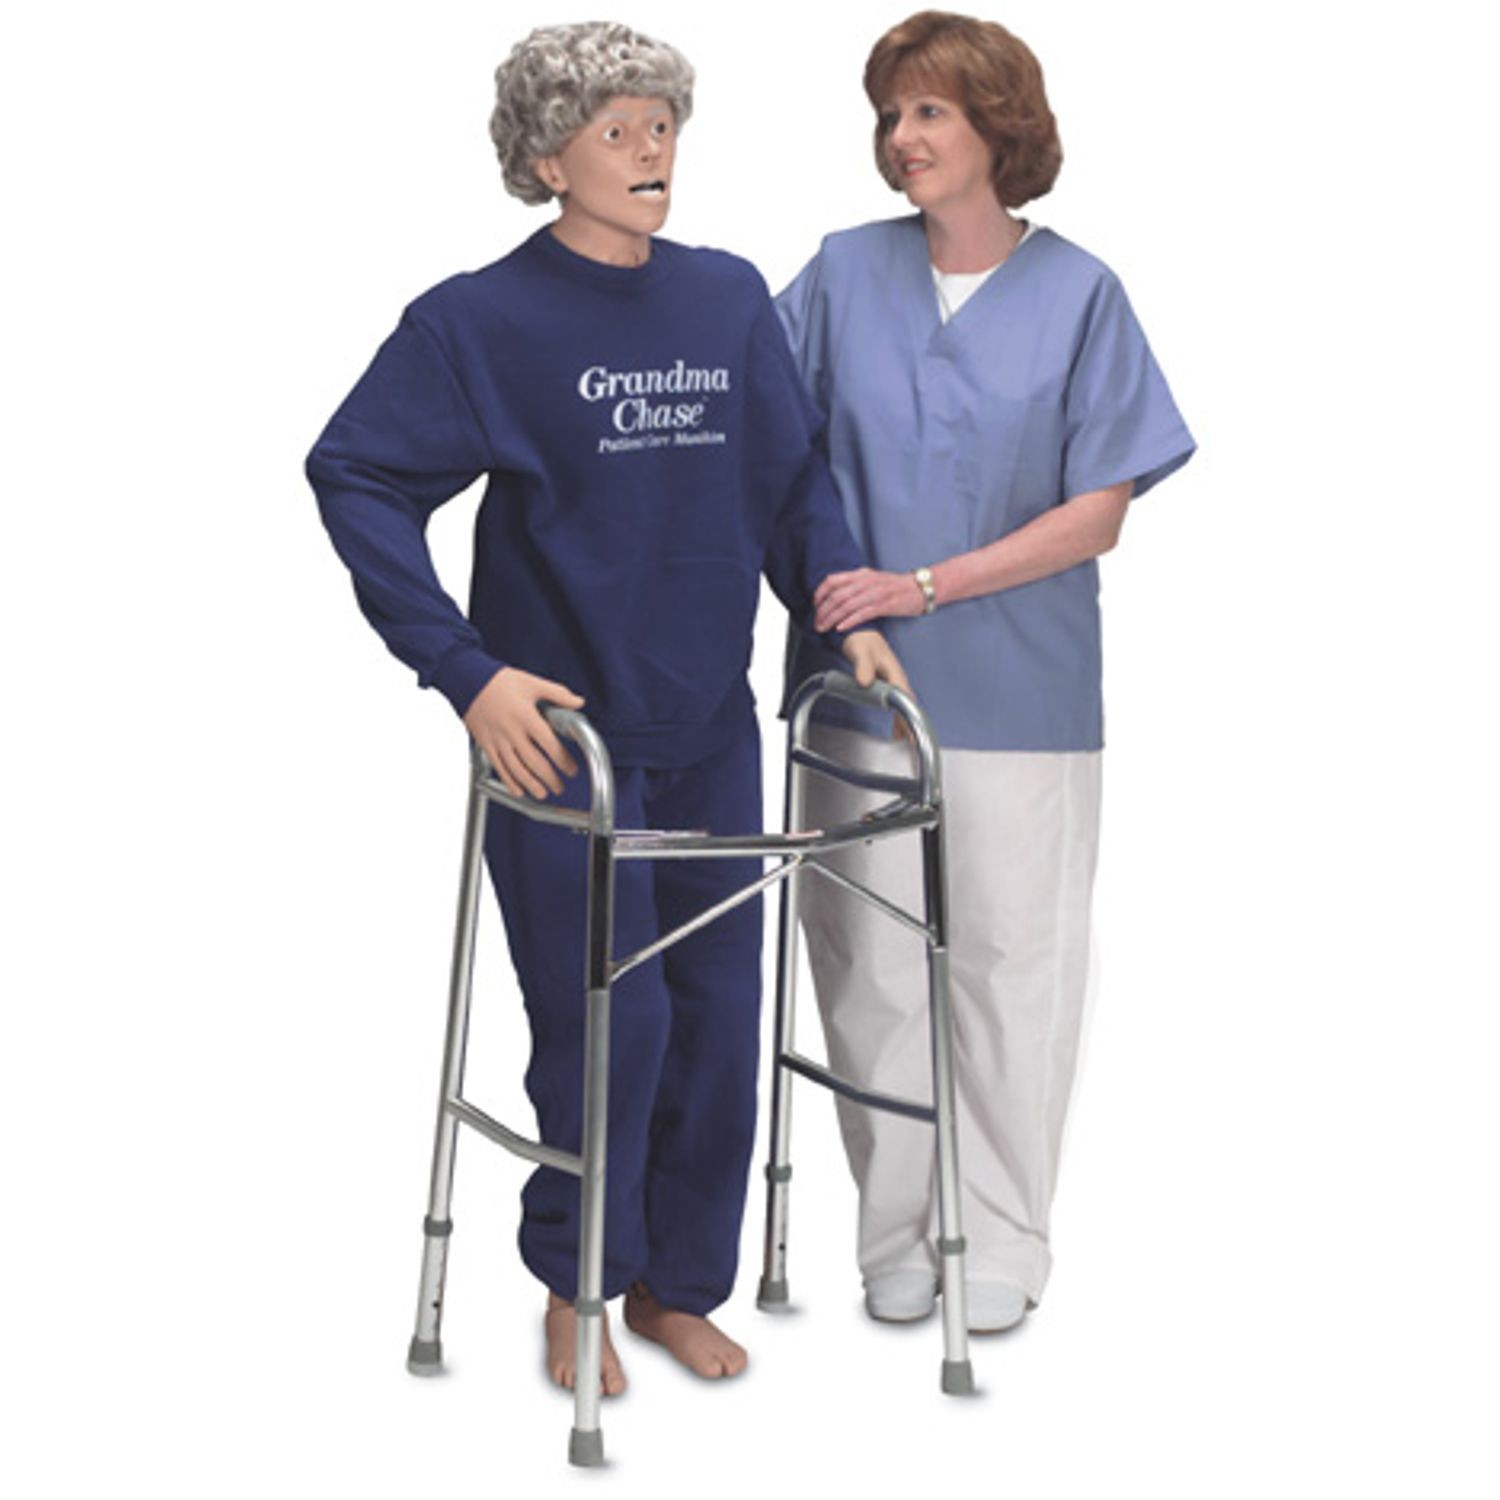 grandma chase patient care manikin armstrong medical